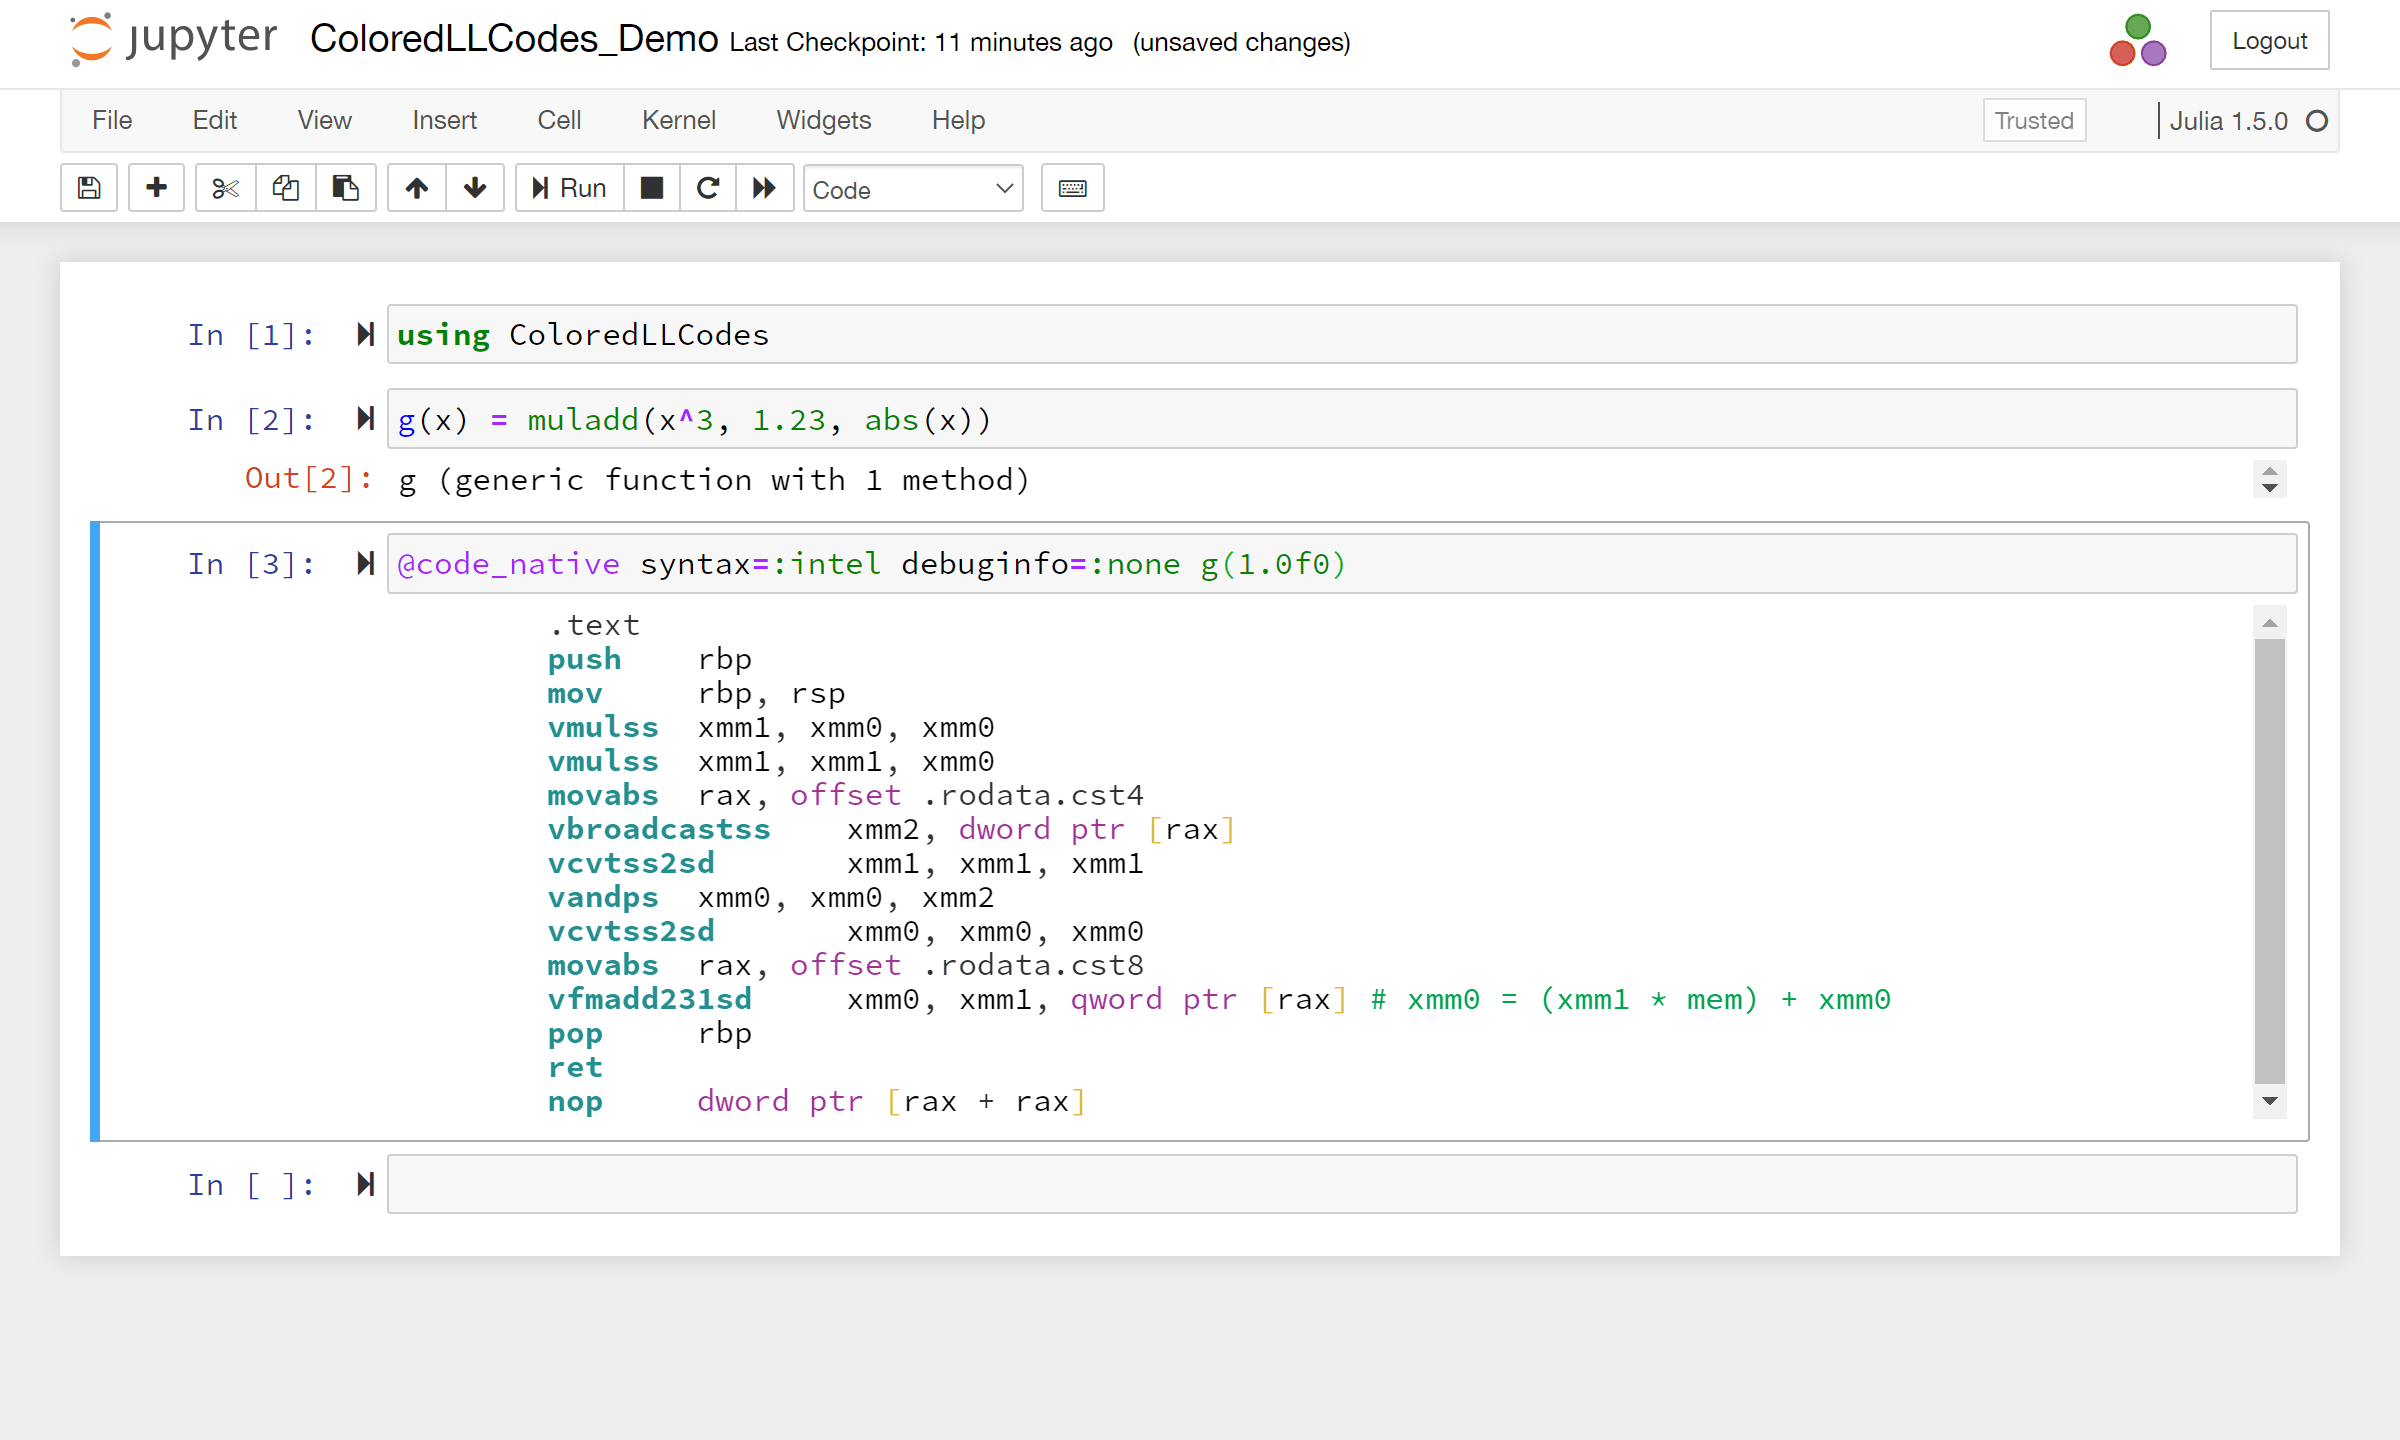 code_native in Jupyter